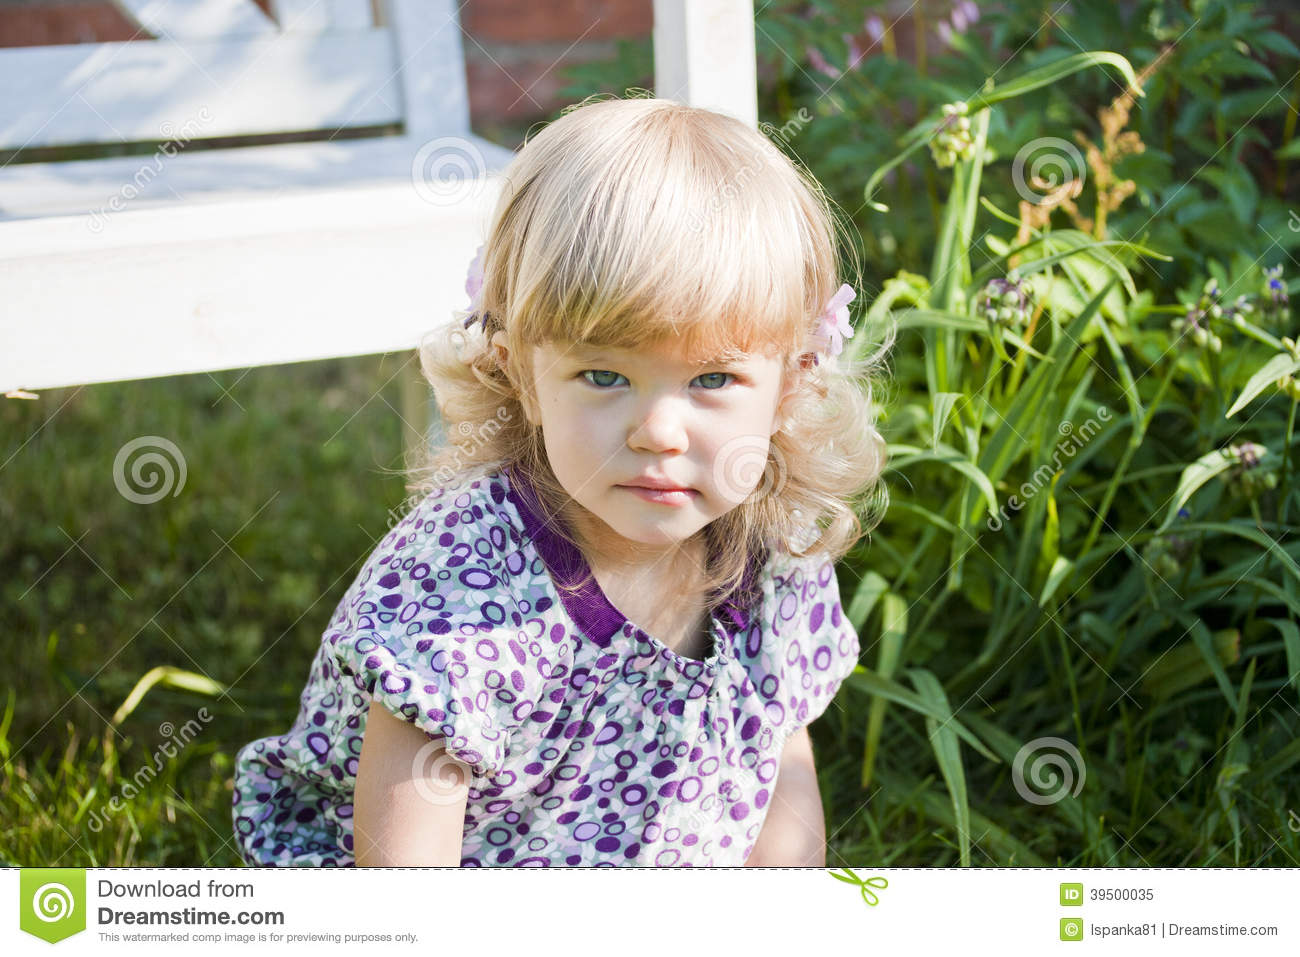 The charming girl in a garden in an elegant dress